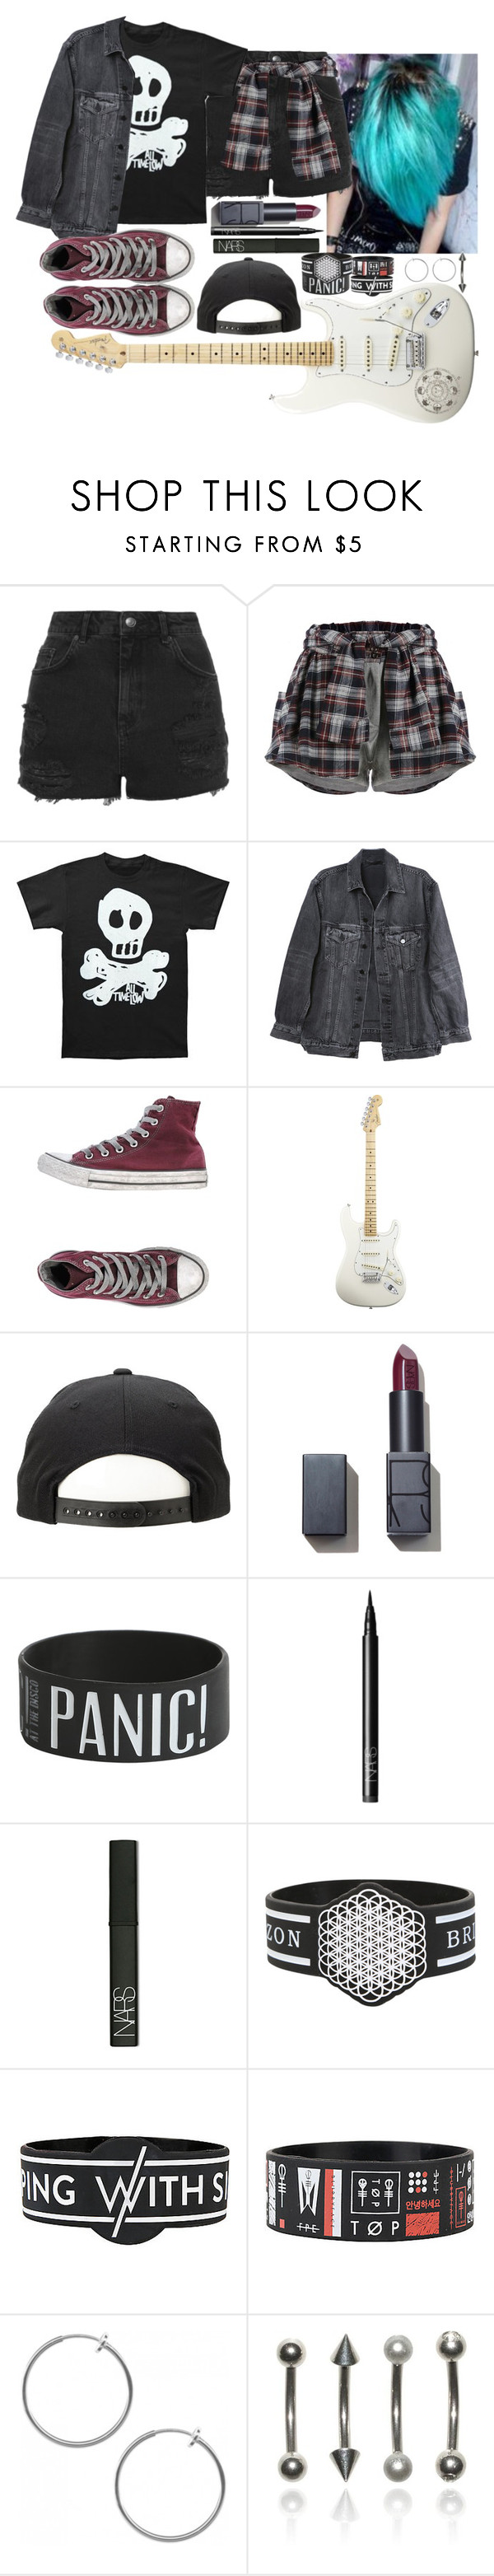 """""""[Concert in Germany w/ the girls]"""" by purplemonkeys005 ❤ liked on Polyvore featuring Anastasia Beverly Hills, Topshop, Y/Project, Converse, American Standard, NARS Cosmetics and mandy"""